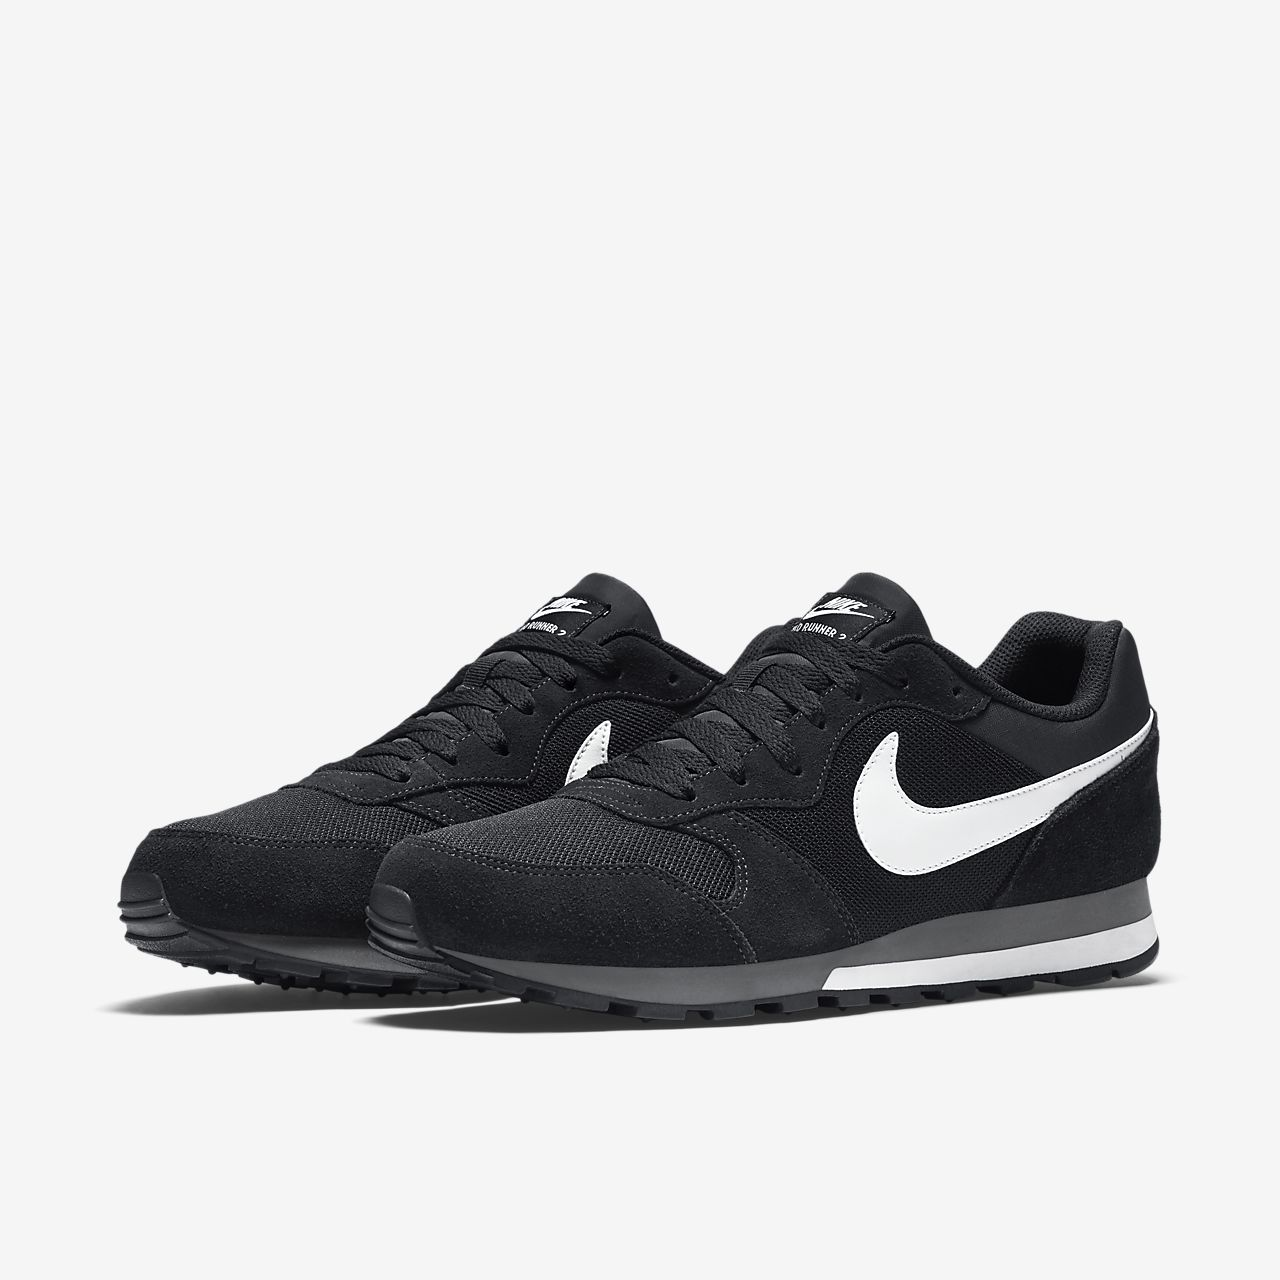 Blanc Nike Md Chaussures Pour Hommes Runner 55Cs9dc